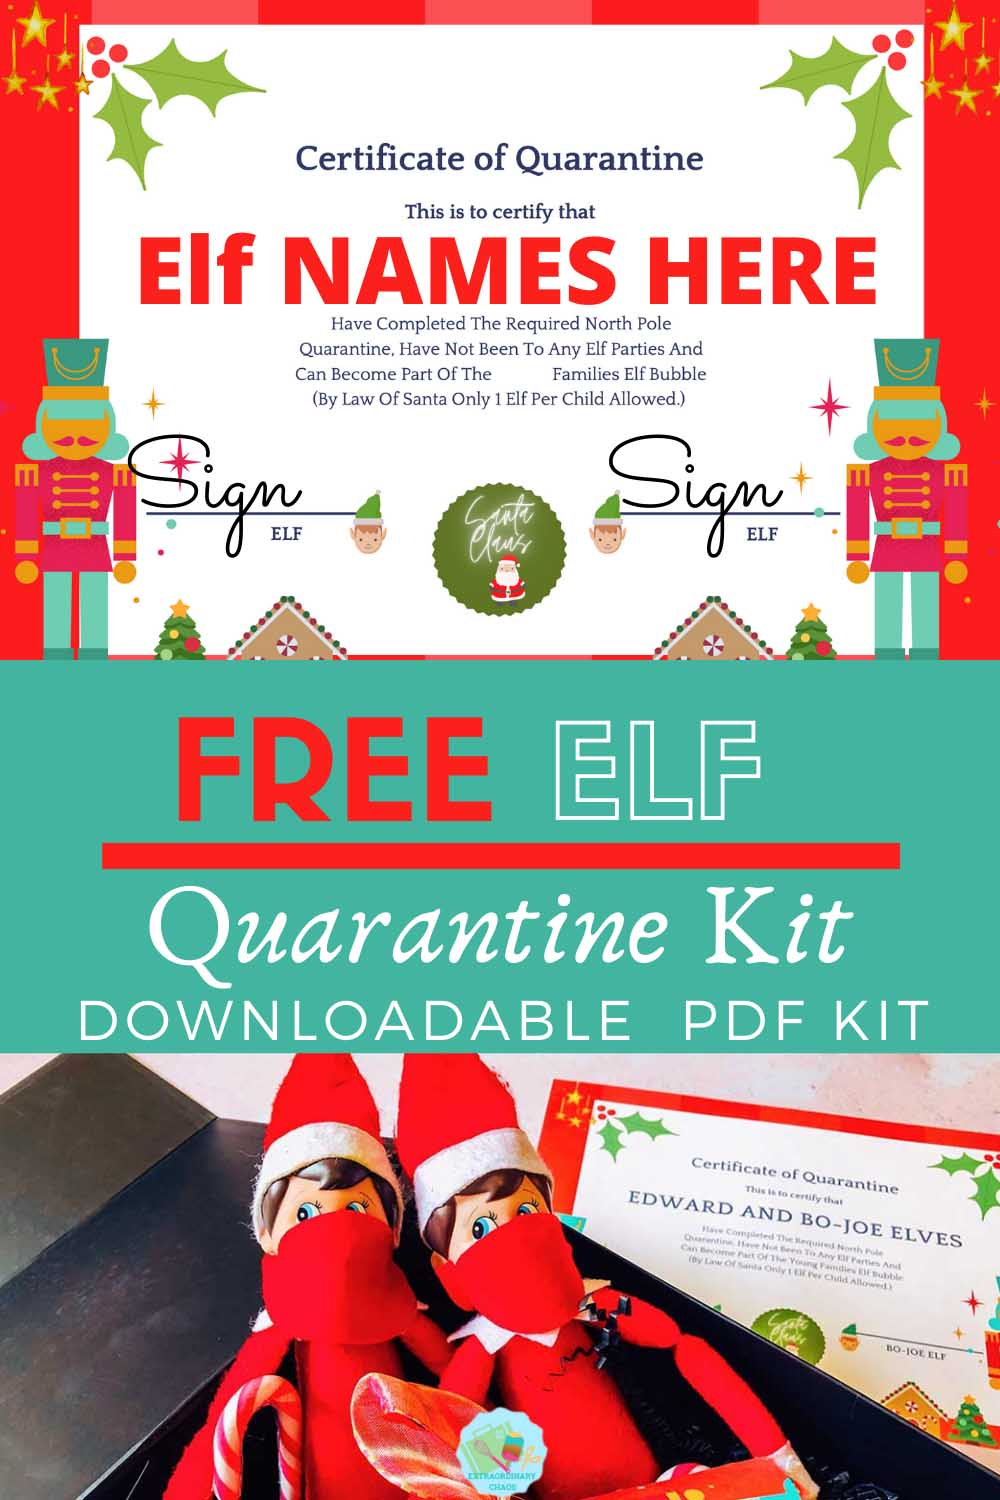 Free Downloadable Elf on the shelf quarantine kit and Elf Quarantine Certificate